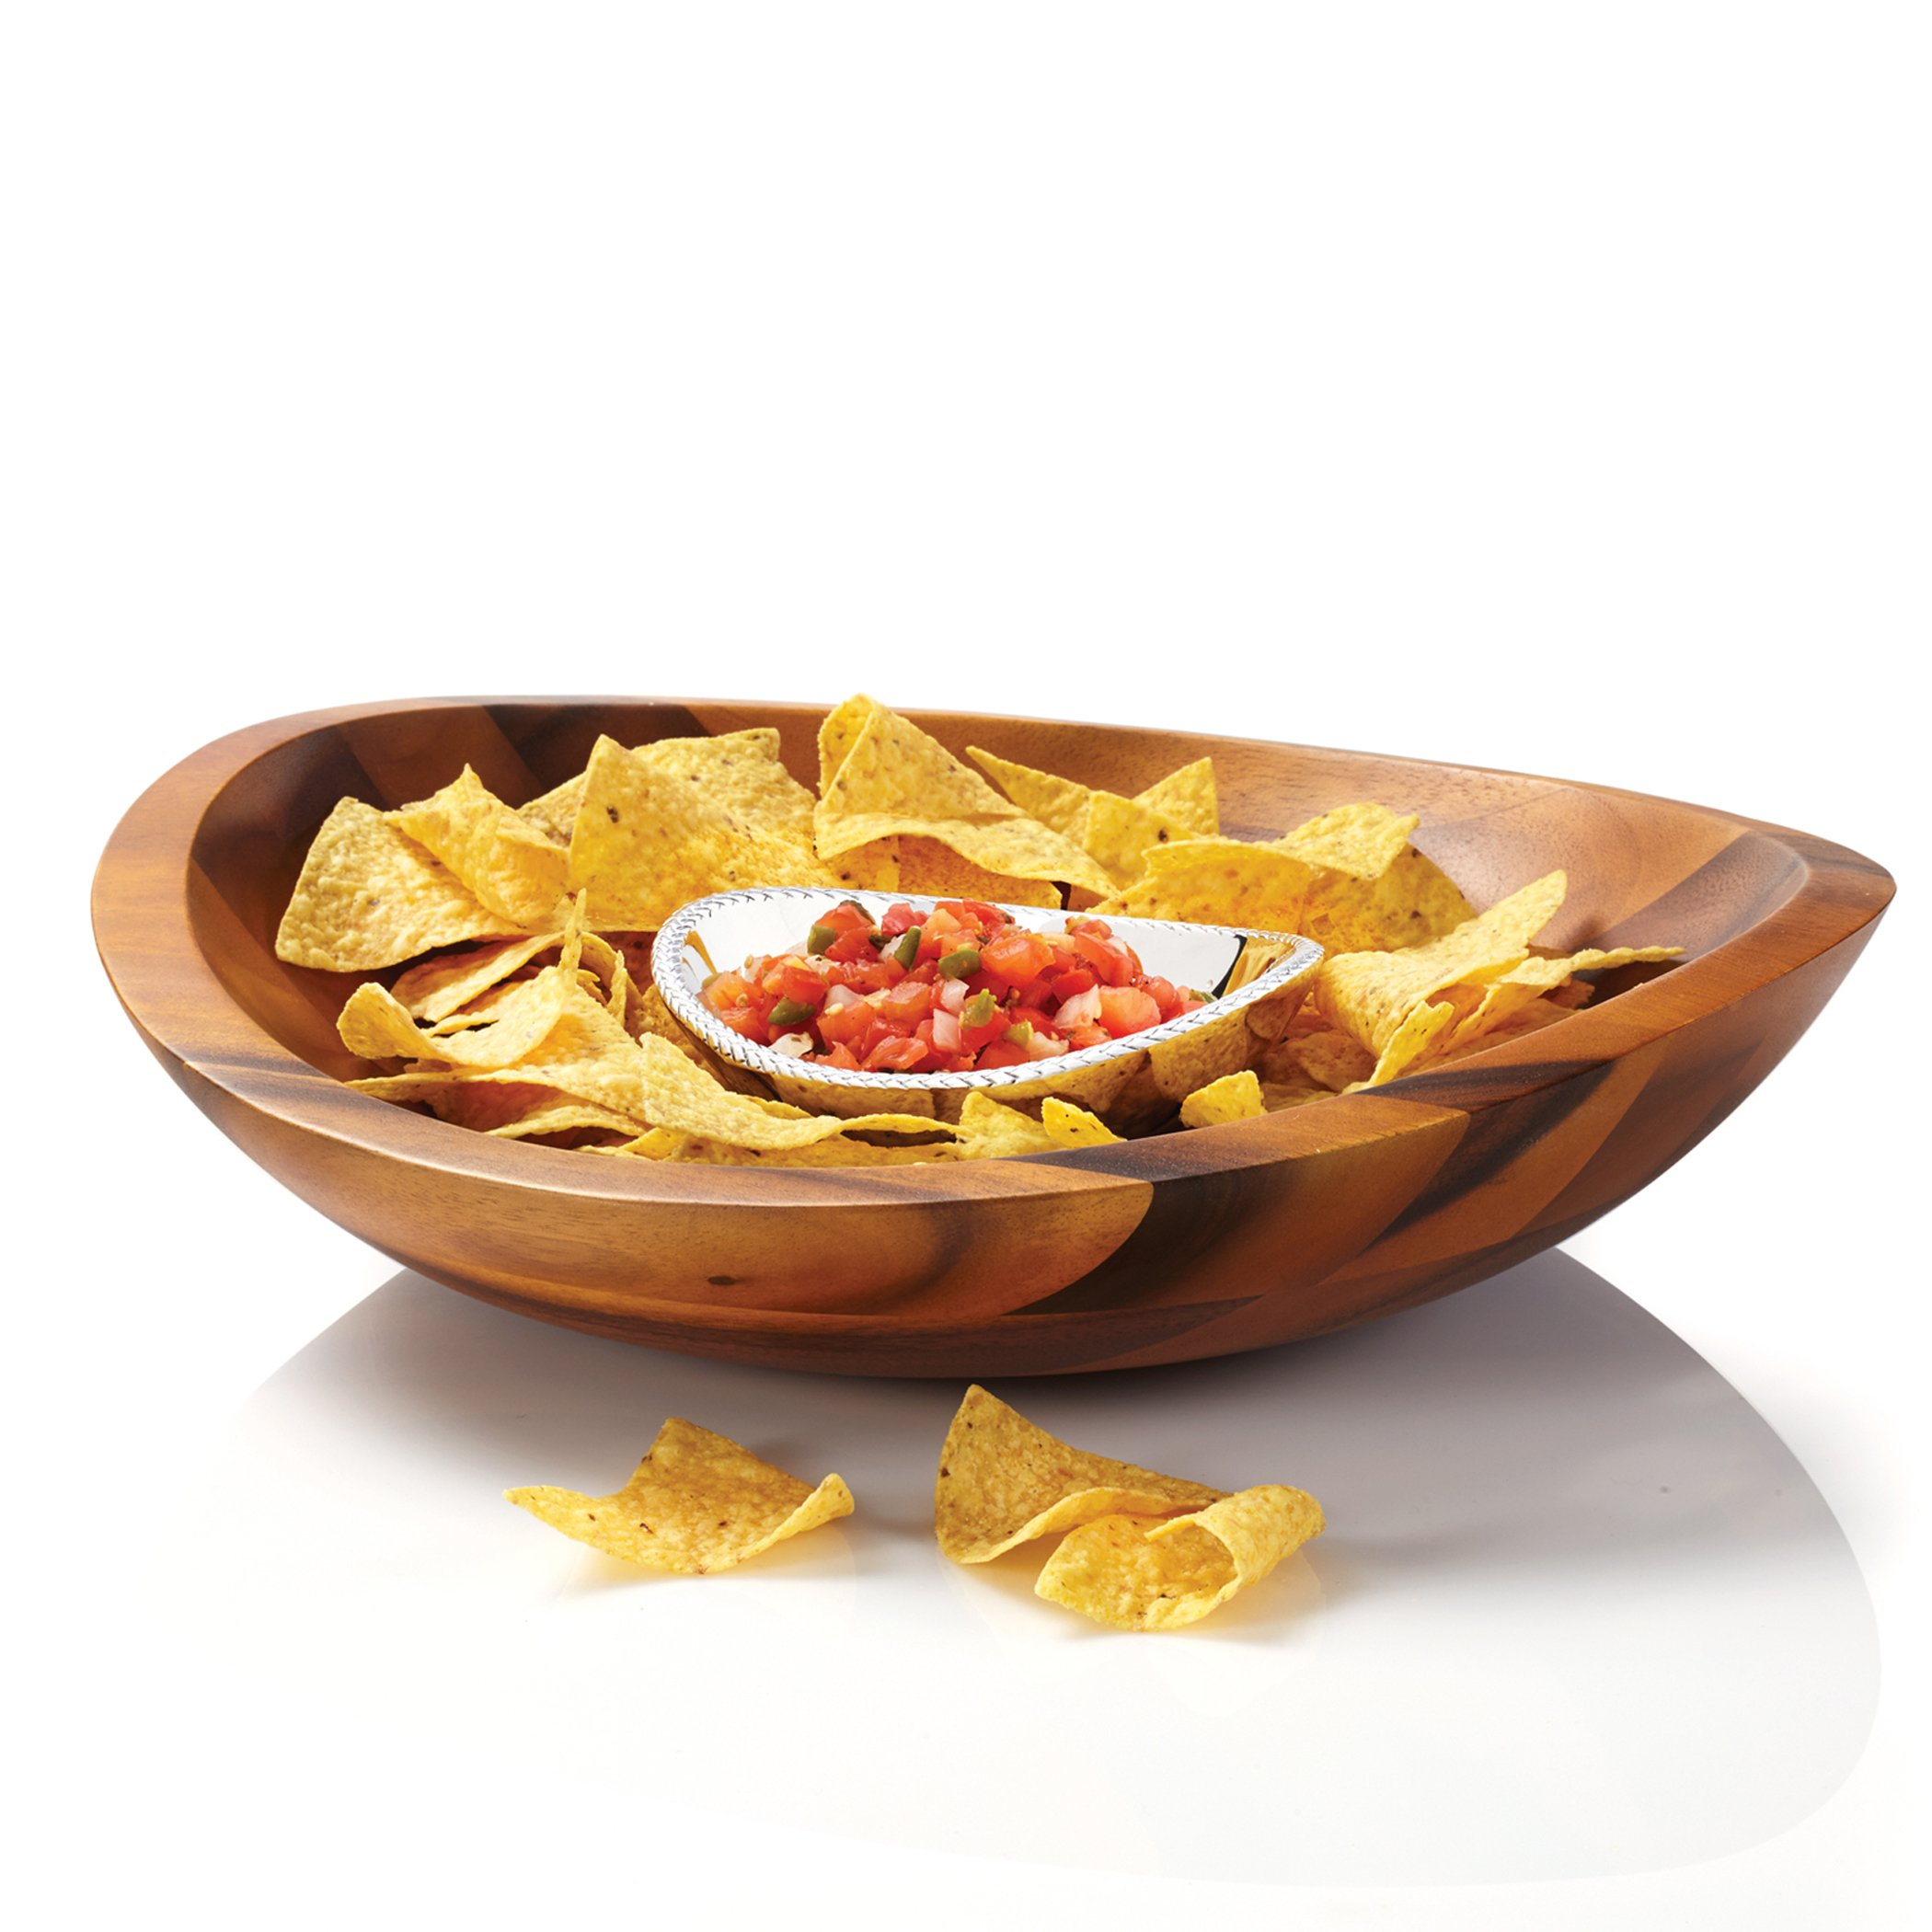 Nambe Braid Wood and Metal Chip and Dip Bowl Serving Set, MT0634 by Nambé (Image #2)